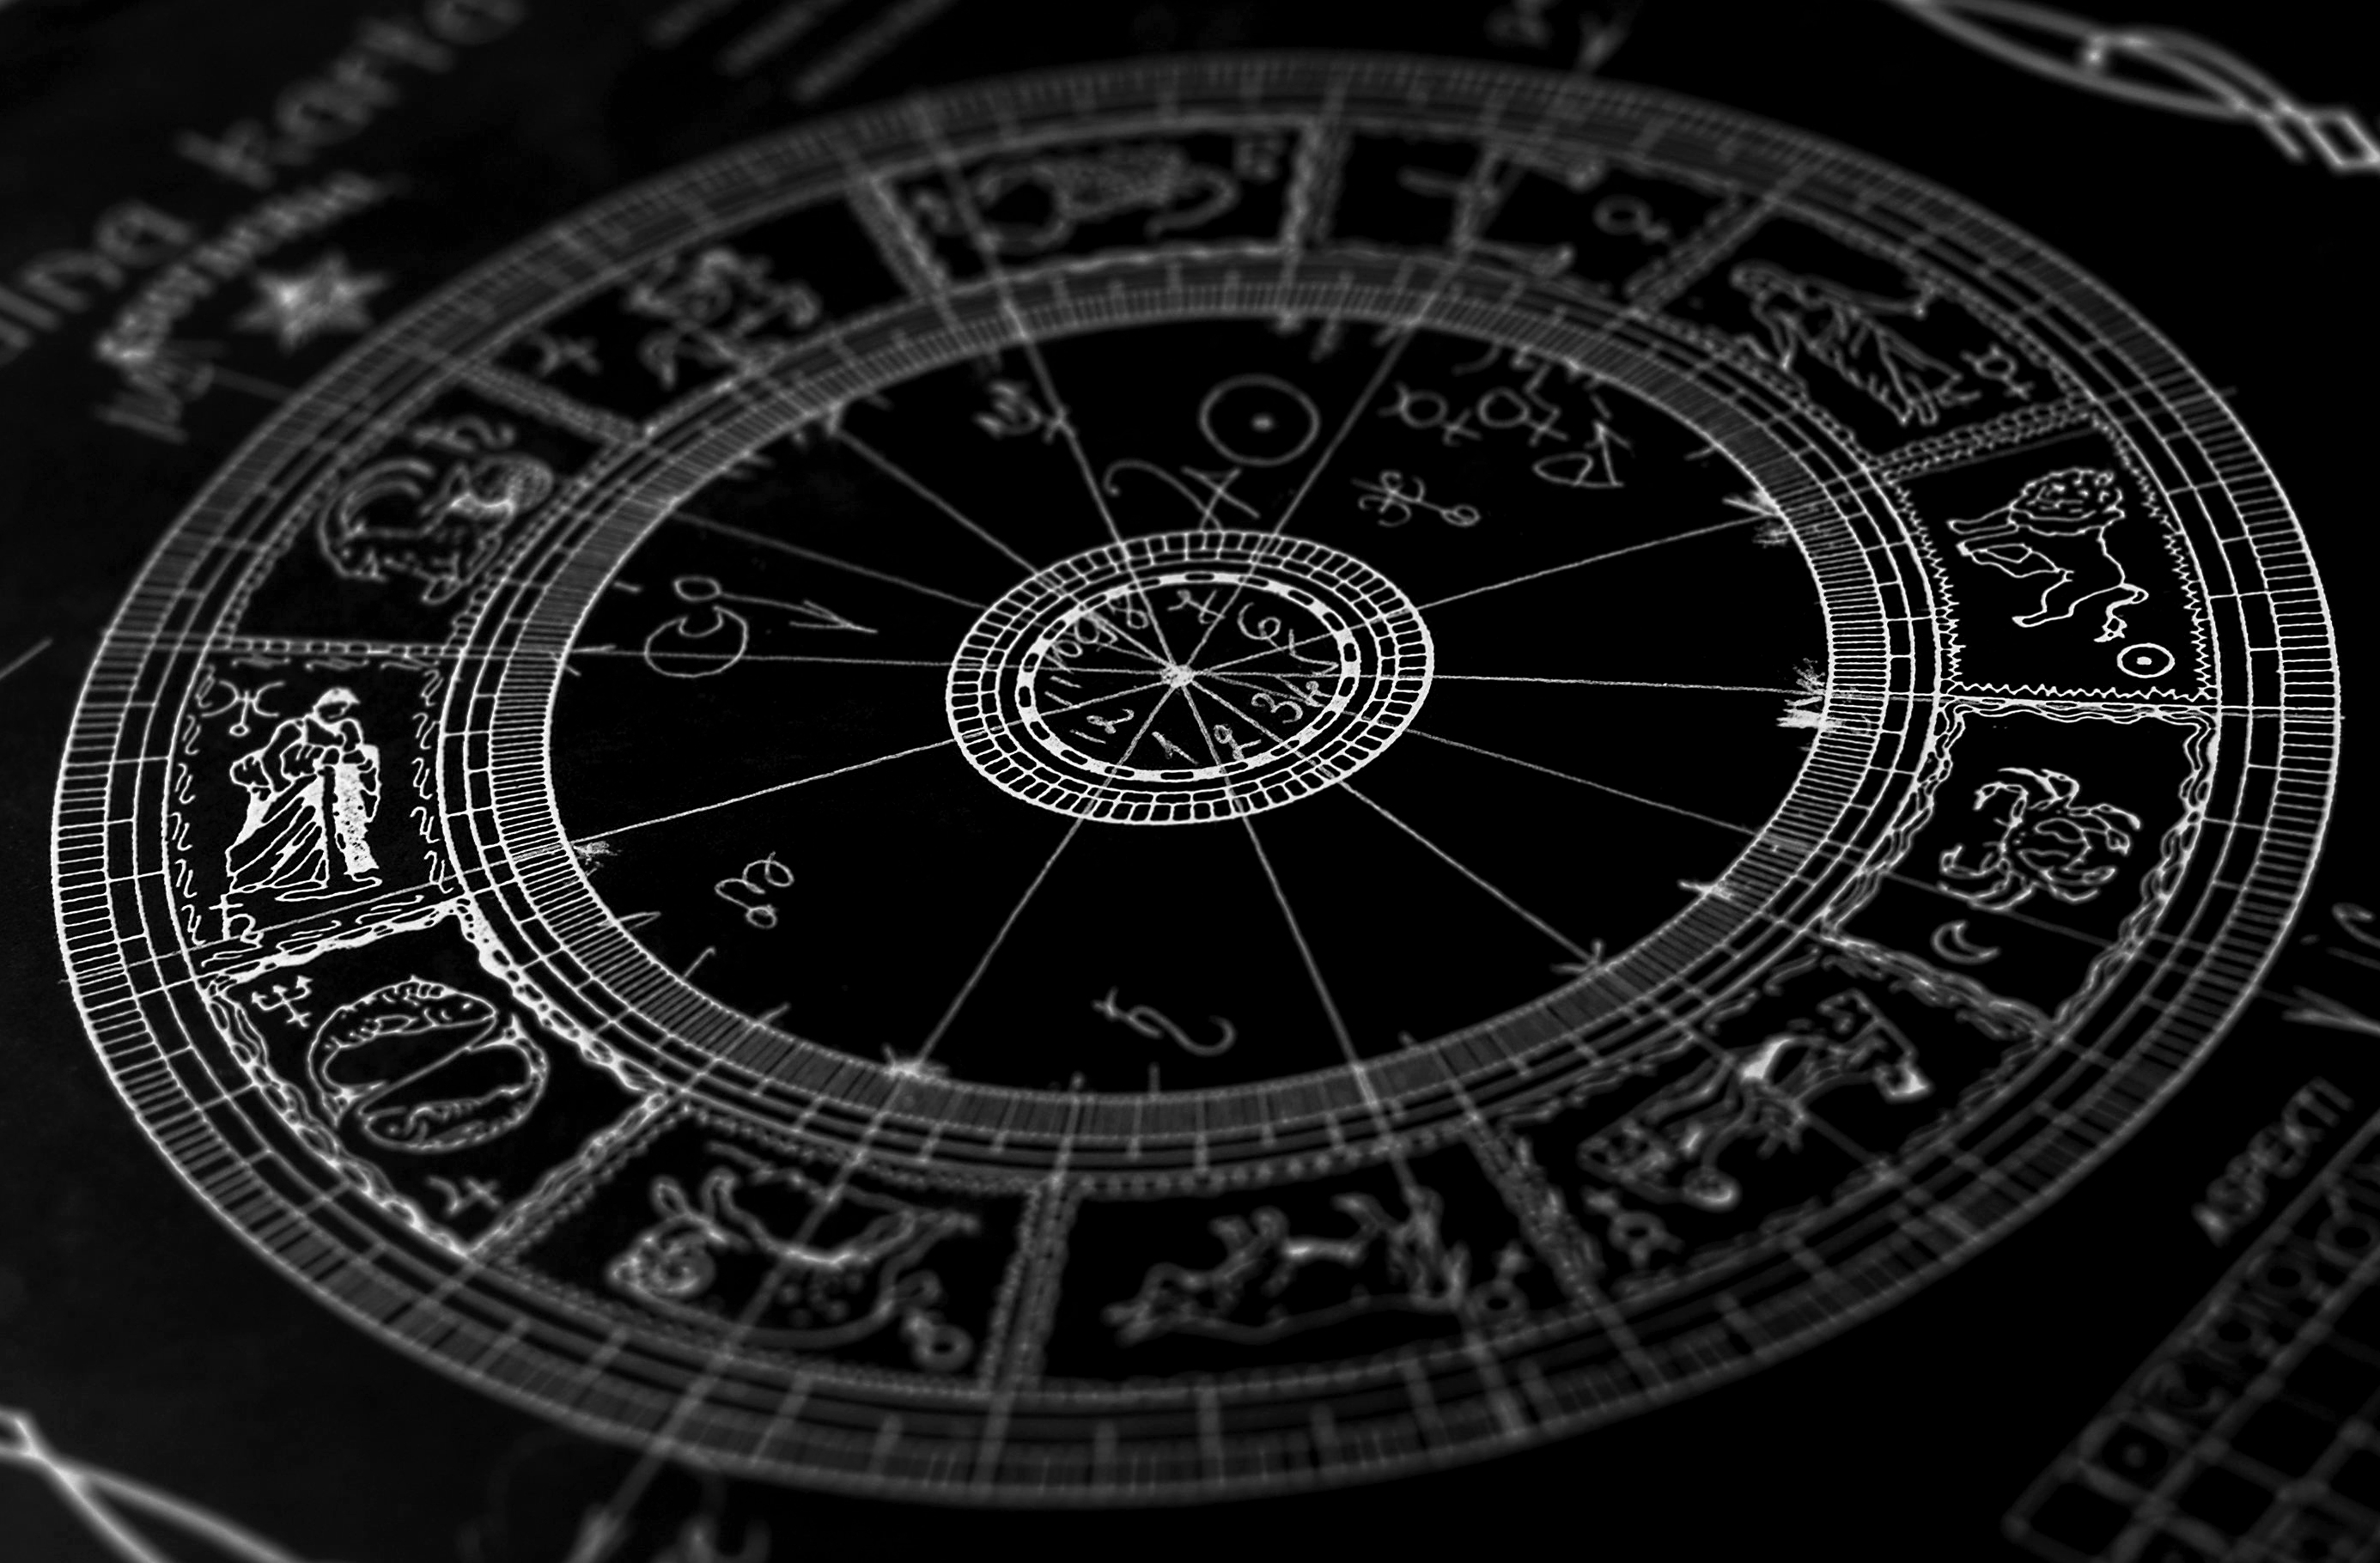 zodiac signs signs of the zodiac a beautiful picture on a black background 047504